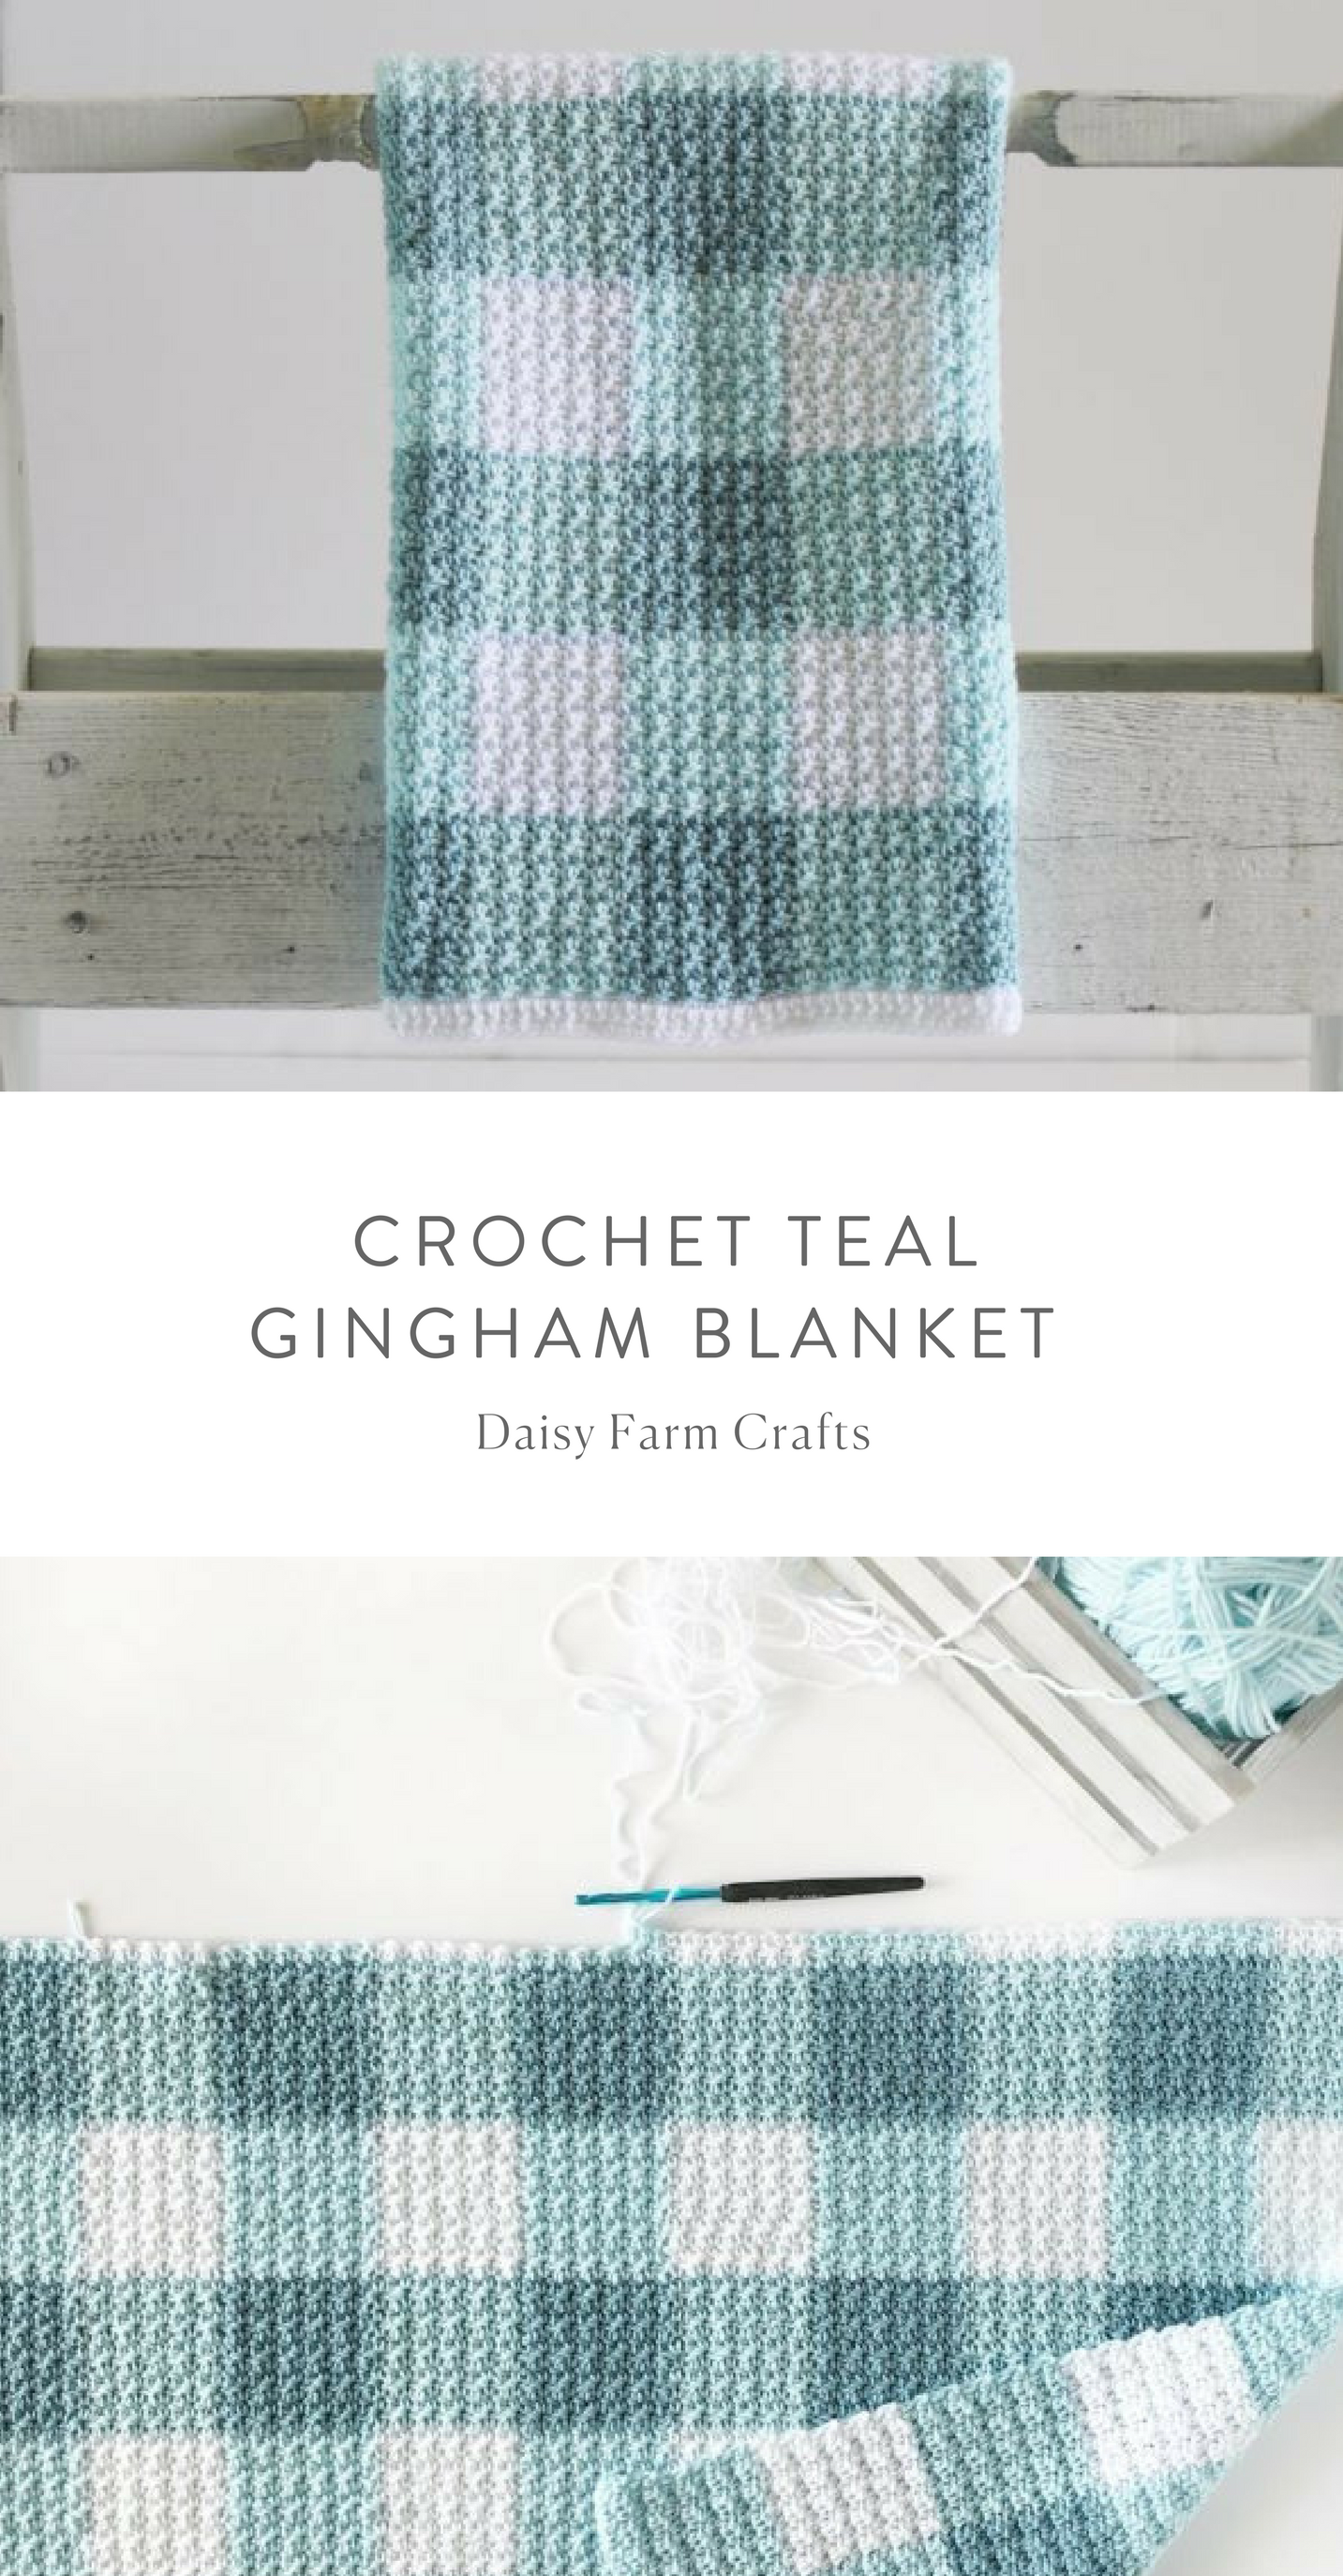 Free Pattern - Crochet Teal Gingham Blanket | Knitting and ...